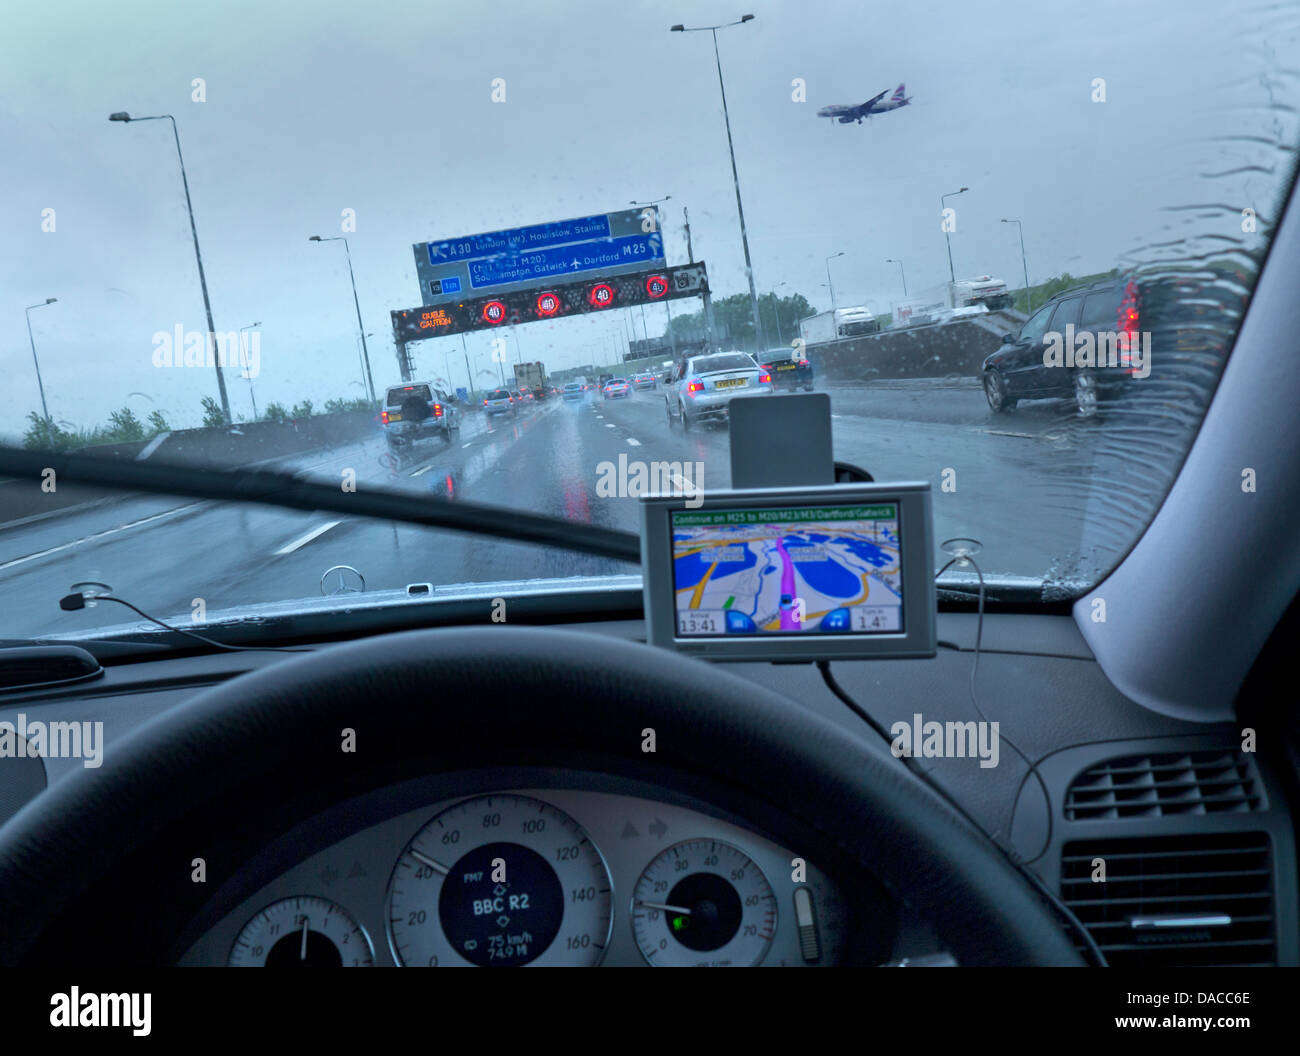 M25 Orbital at Heathrow airport in rain conditions with aircraft on final approach red speed hazard lights on information - Stock Image